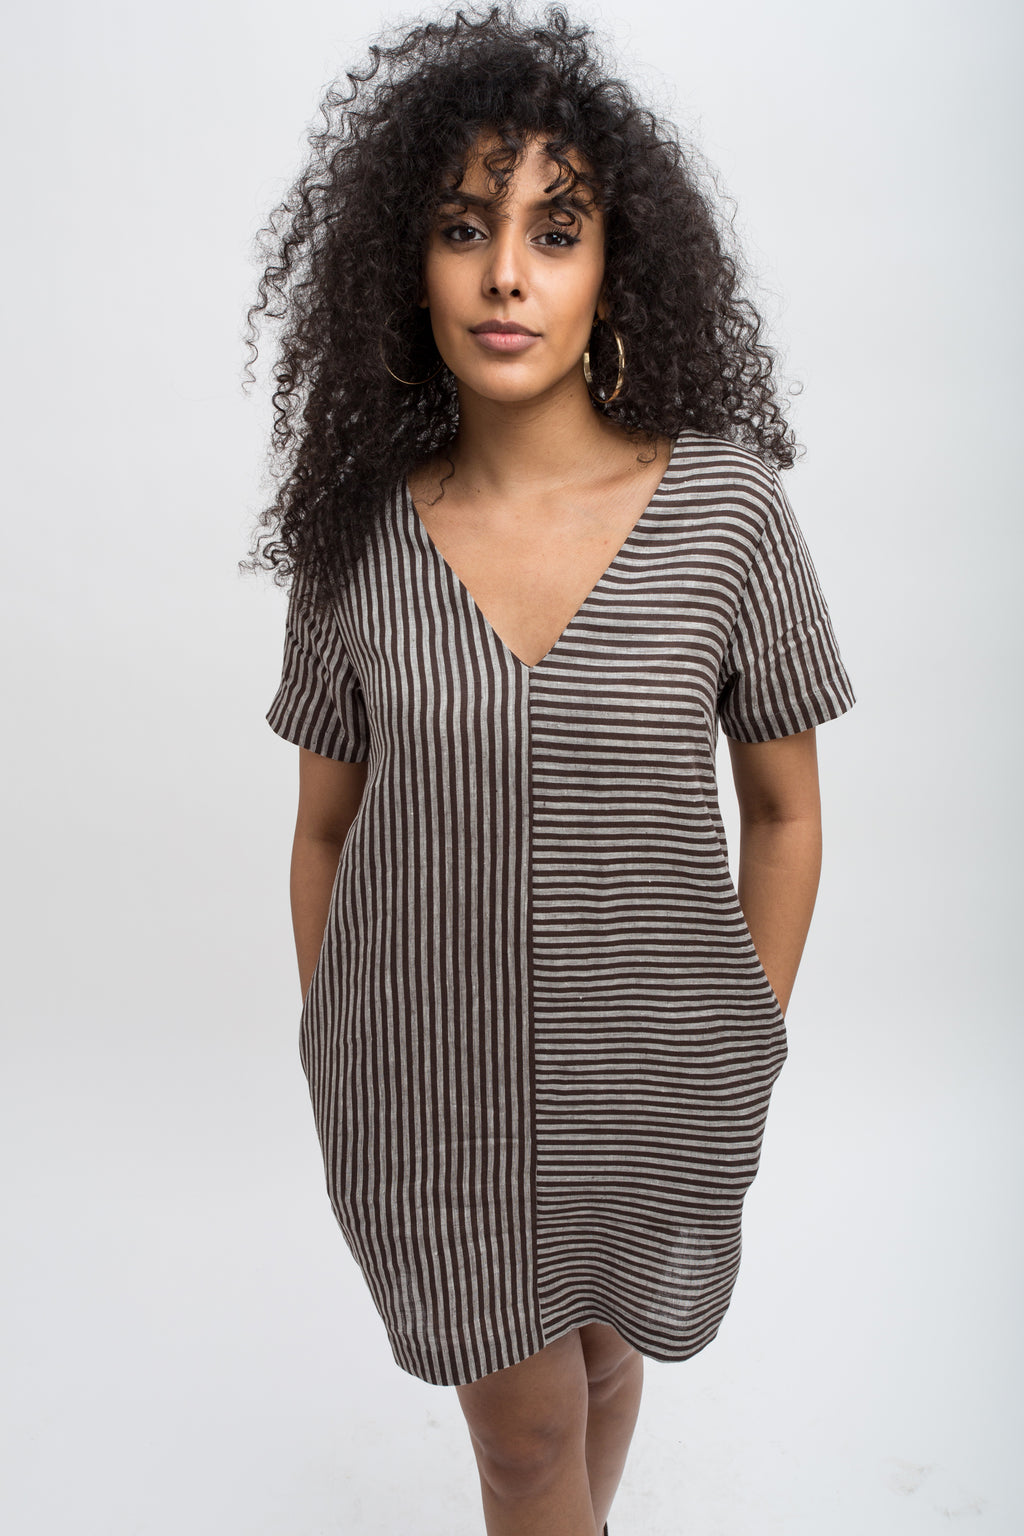 Verona Tunic/Dress - Grey Coal